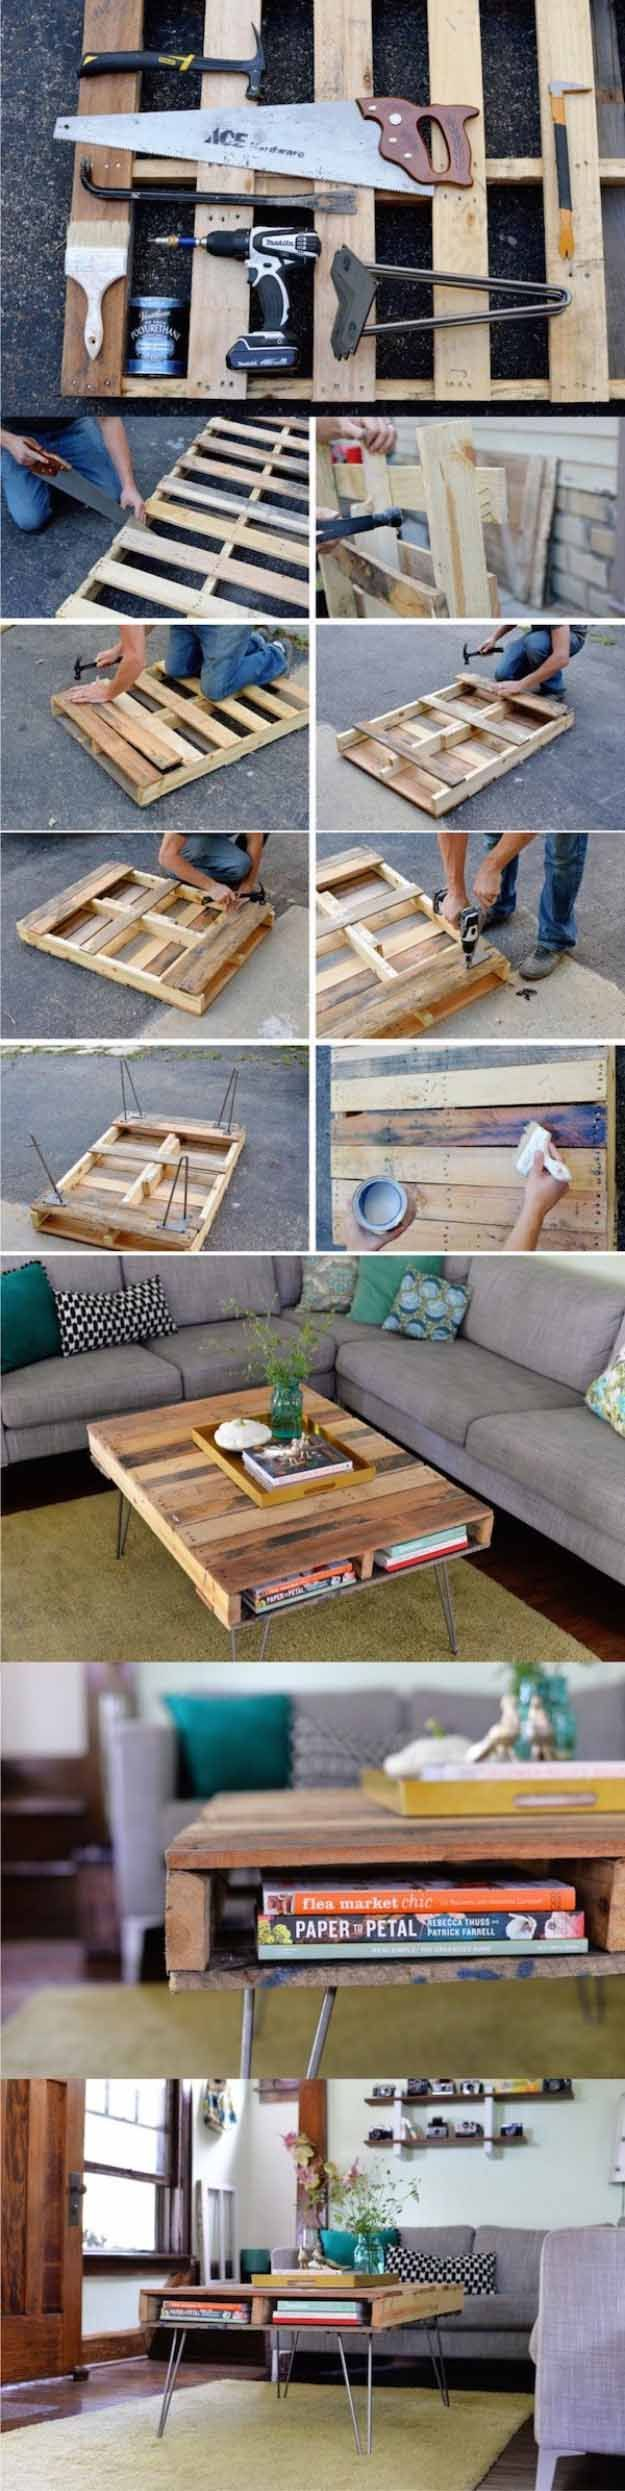 cool 15 Insane DIY Coffee Table Ideas 3... by http://www.best99-home-decorpics.club/handmade-home-decor/15-insane-diy-coffee-table-ideas-3/